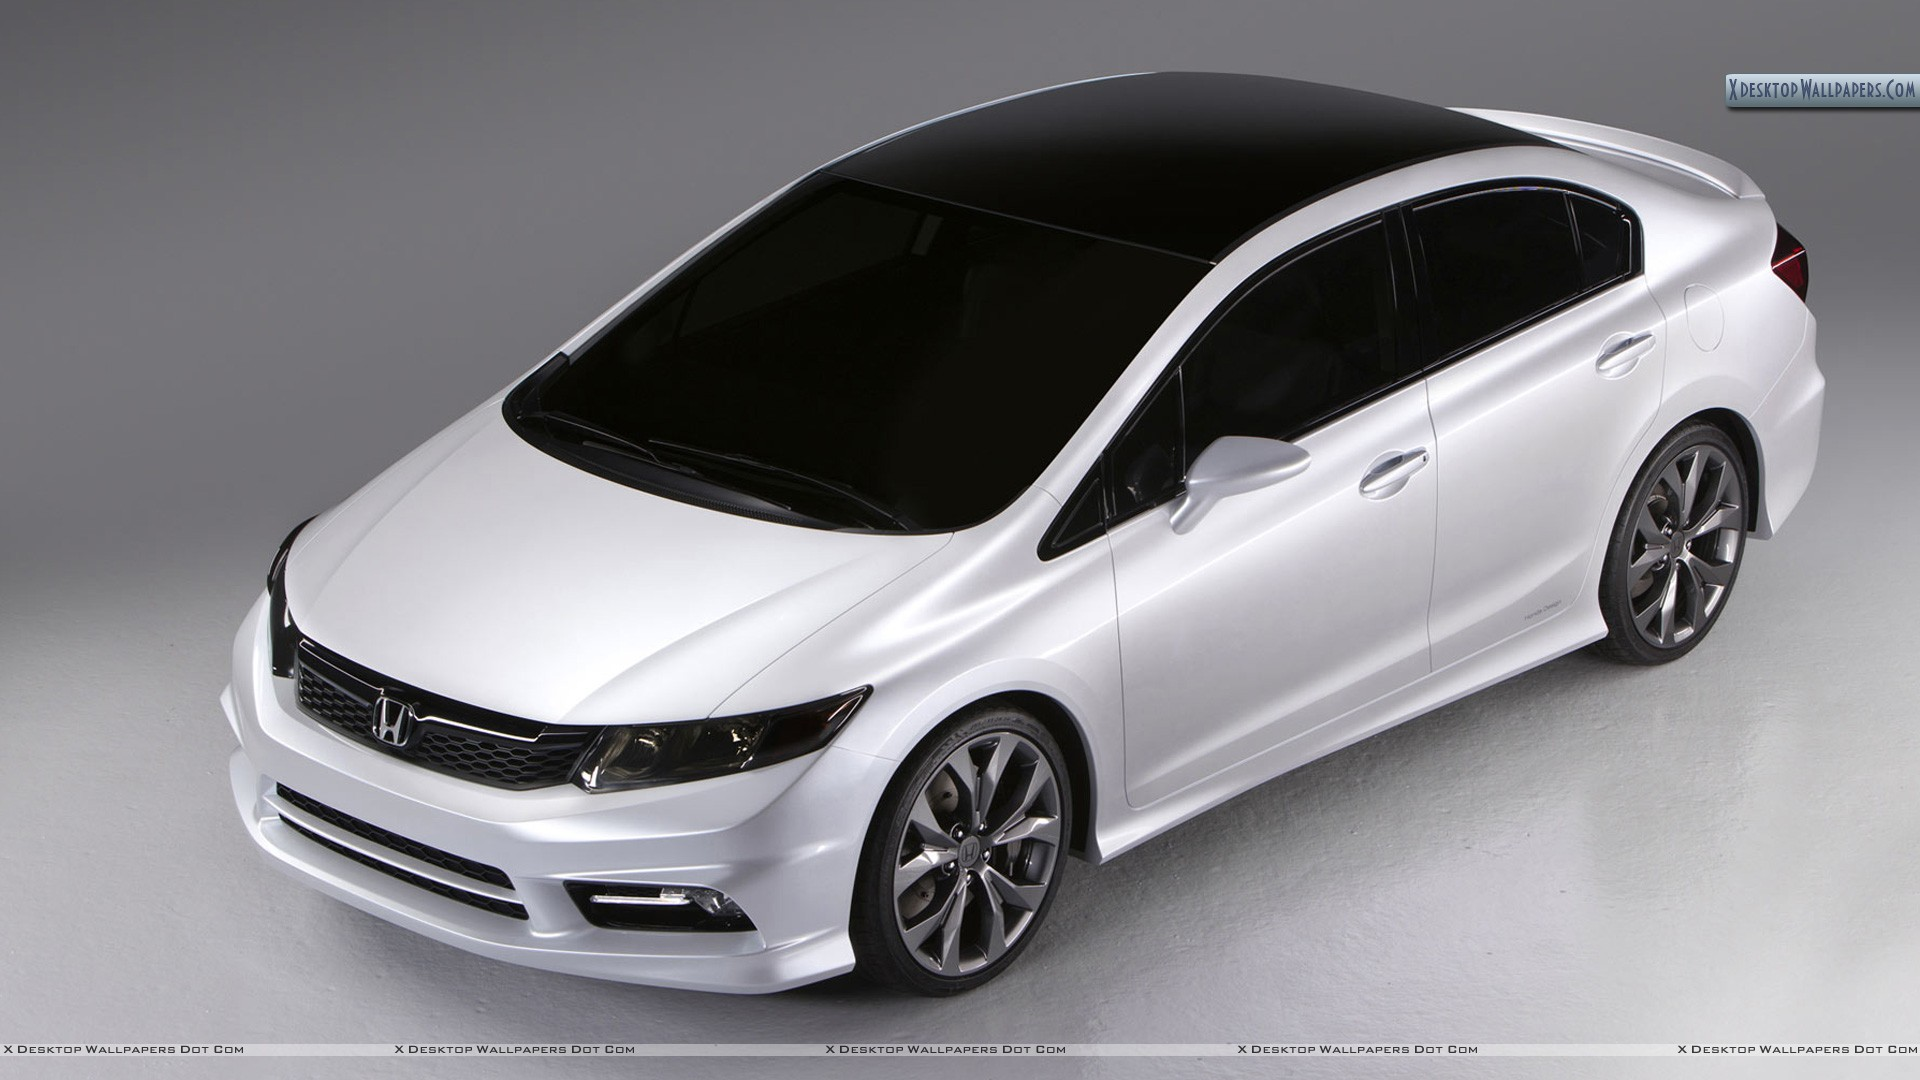 honda civic wallpapers, photos & images in hd